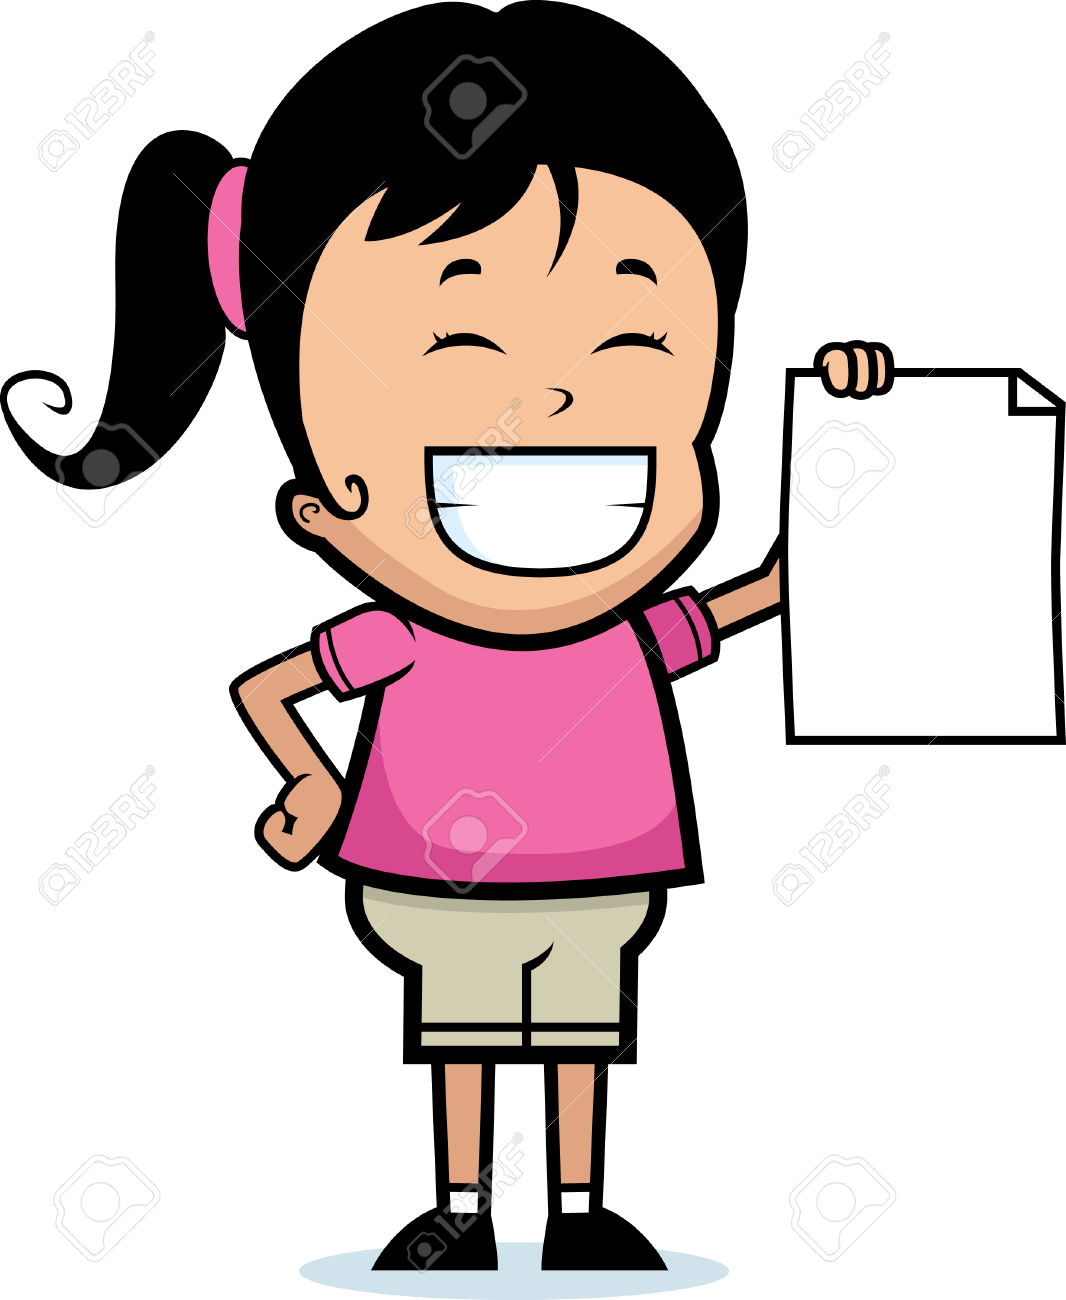 A Happy Cartoon Child Proudly Holding A Piece Of Paper. Royalty.